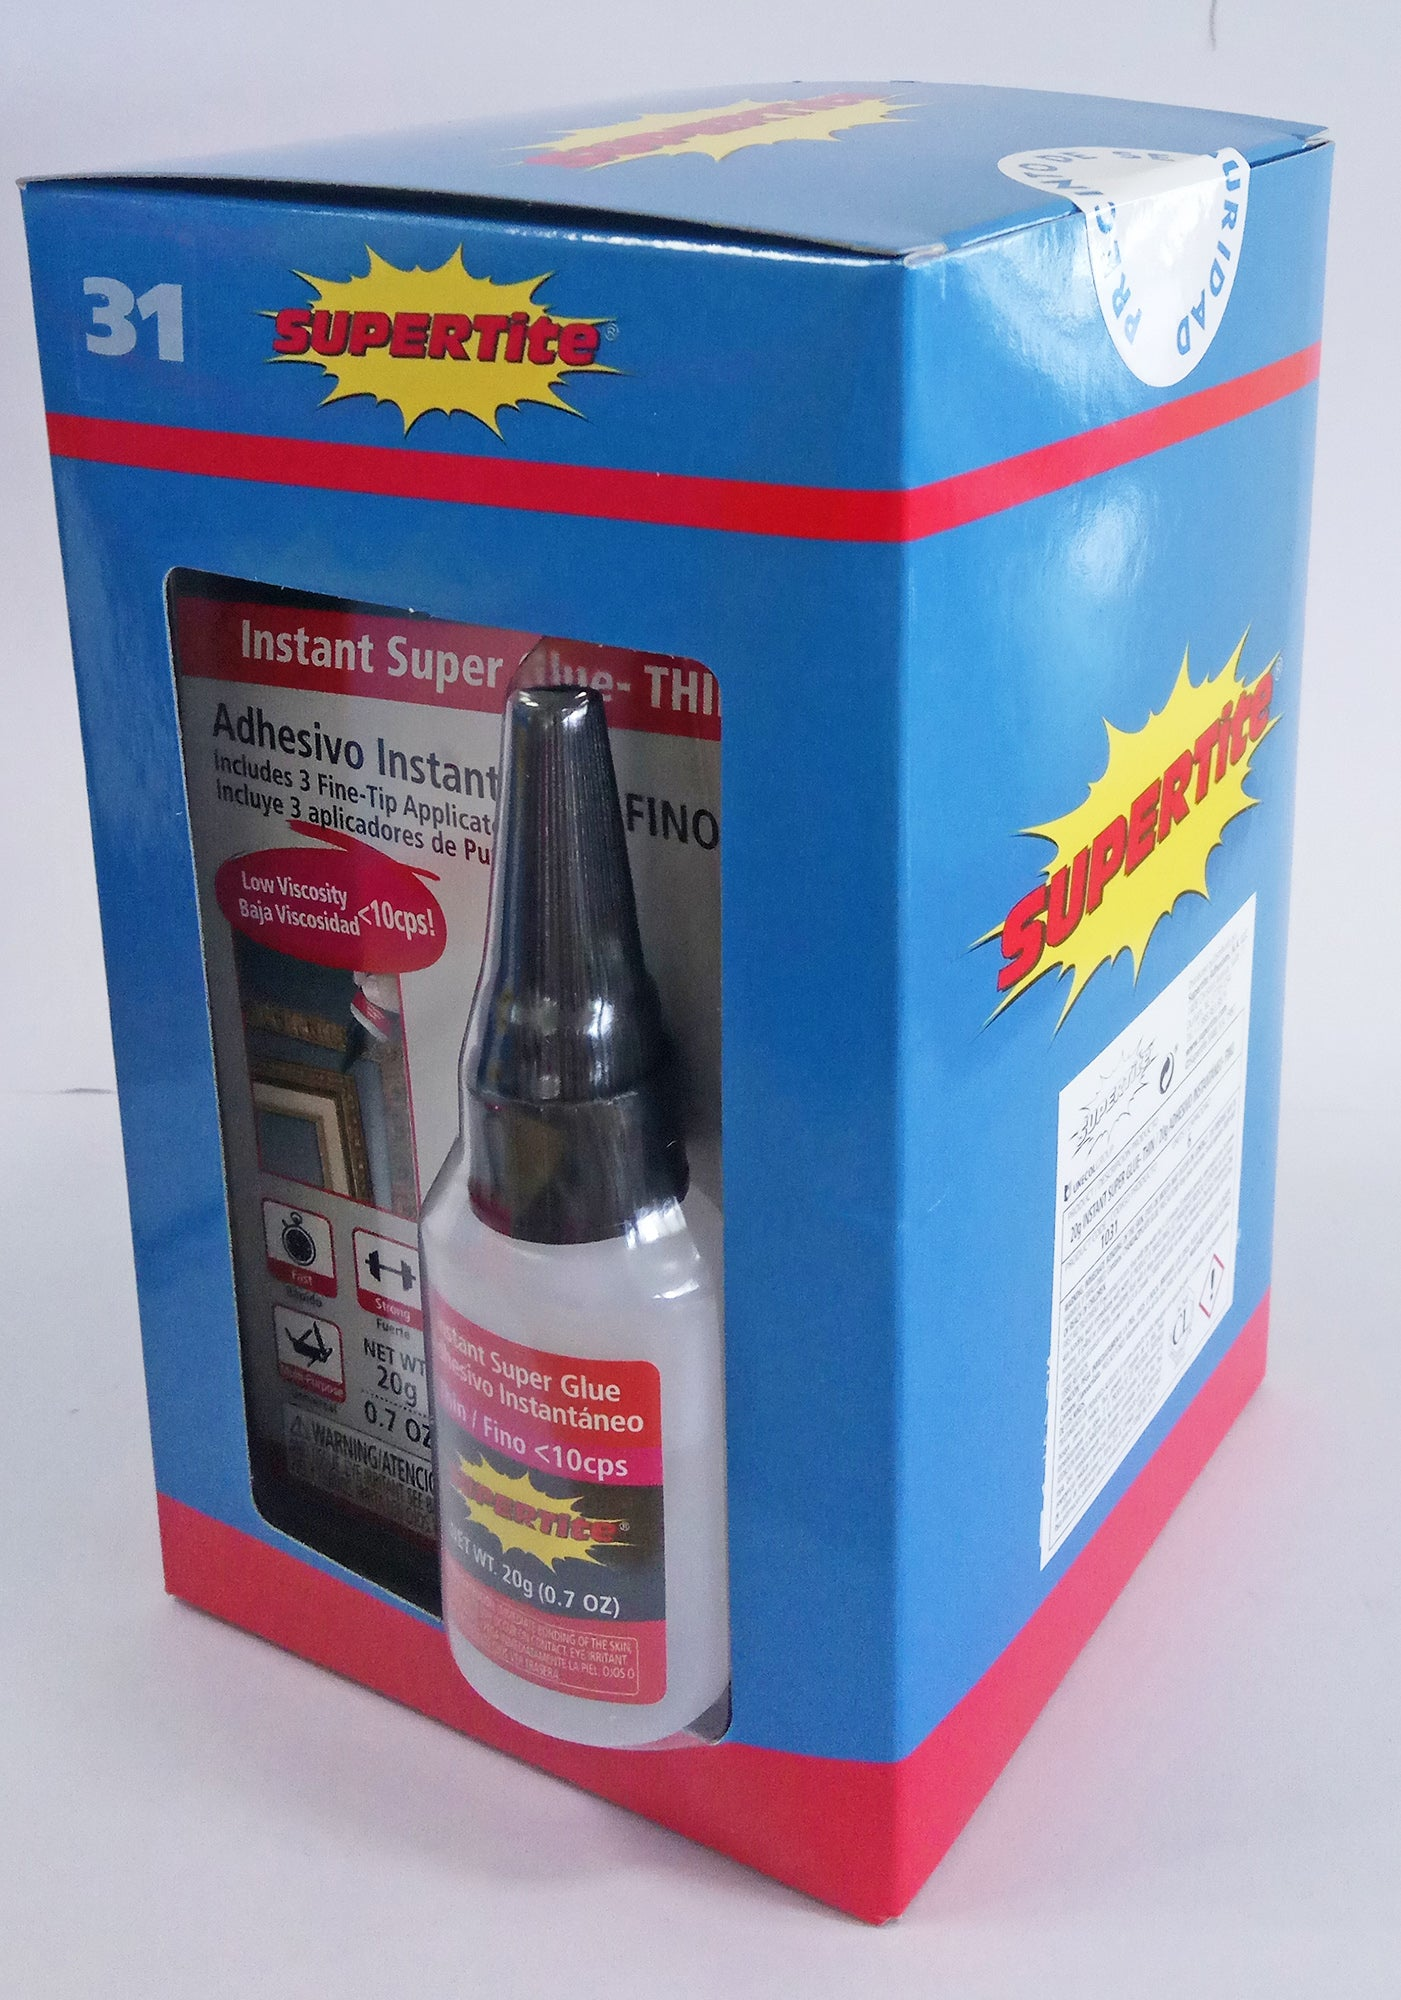 Ref-1031 Supertite Thin-Instant Super Glue +3 Fine Tip Applicators - 20g (0.7oz) Bottle